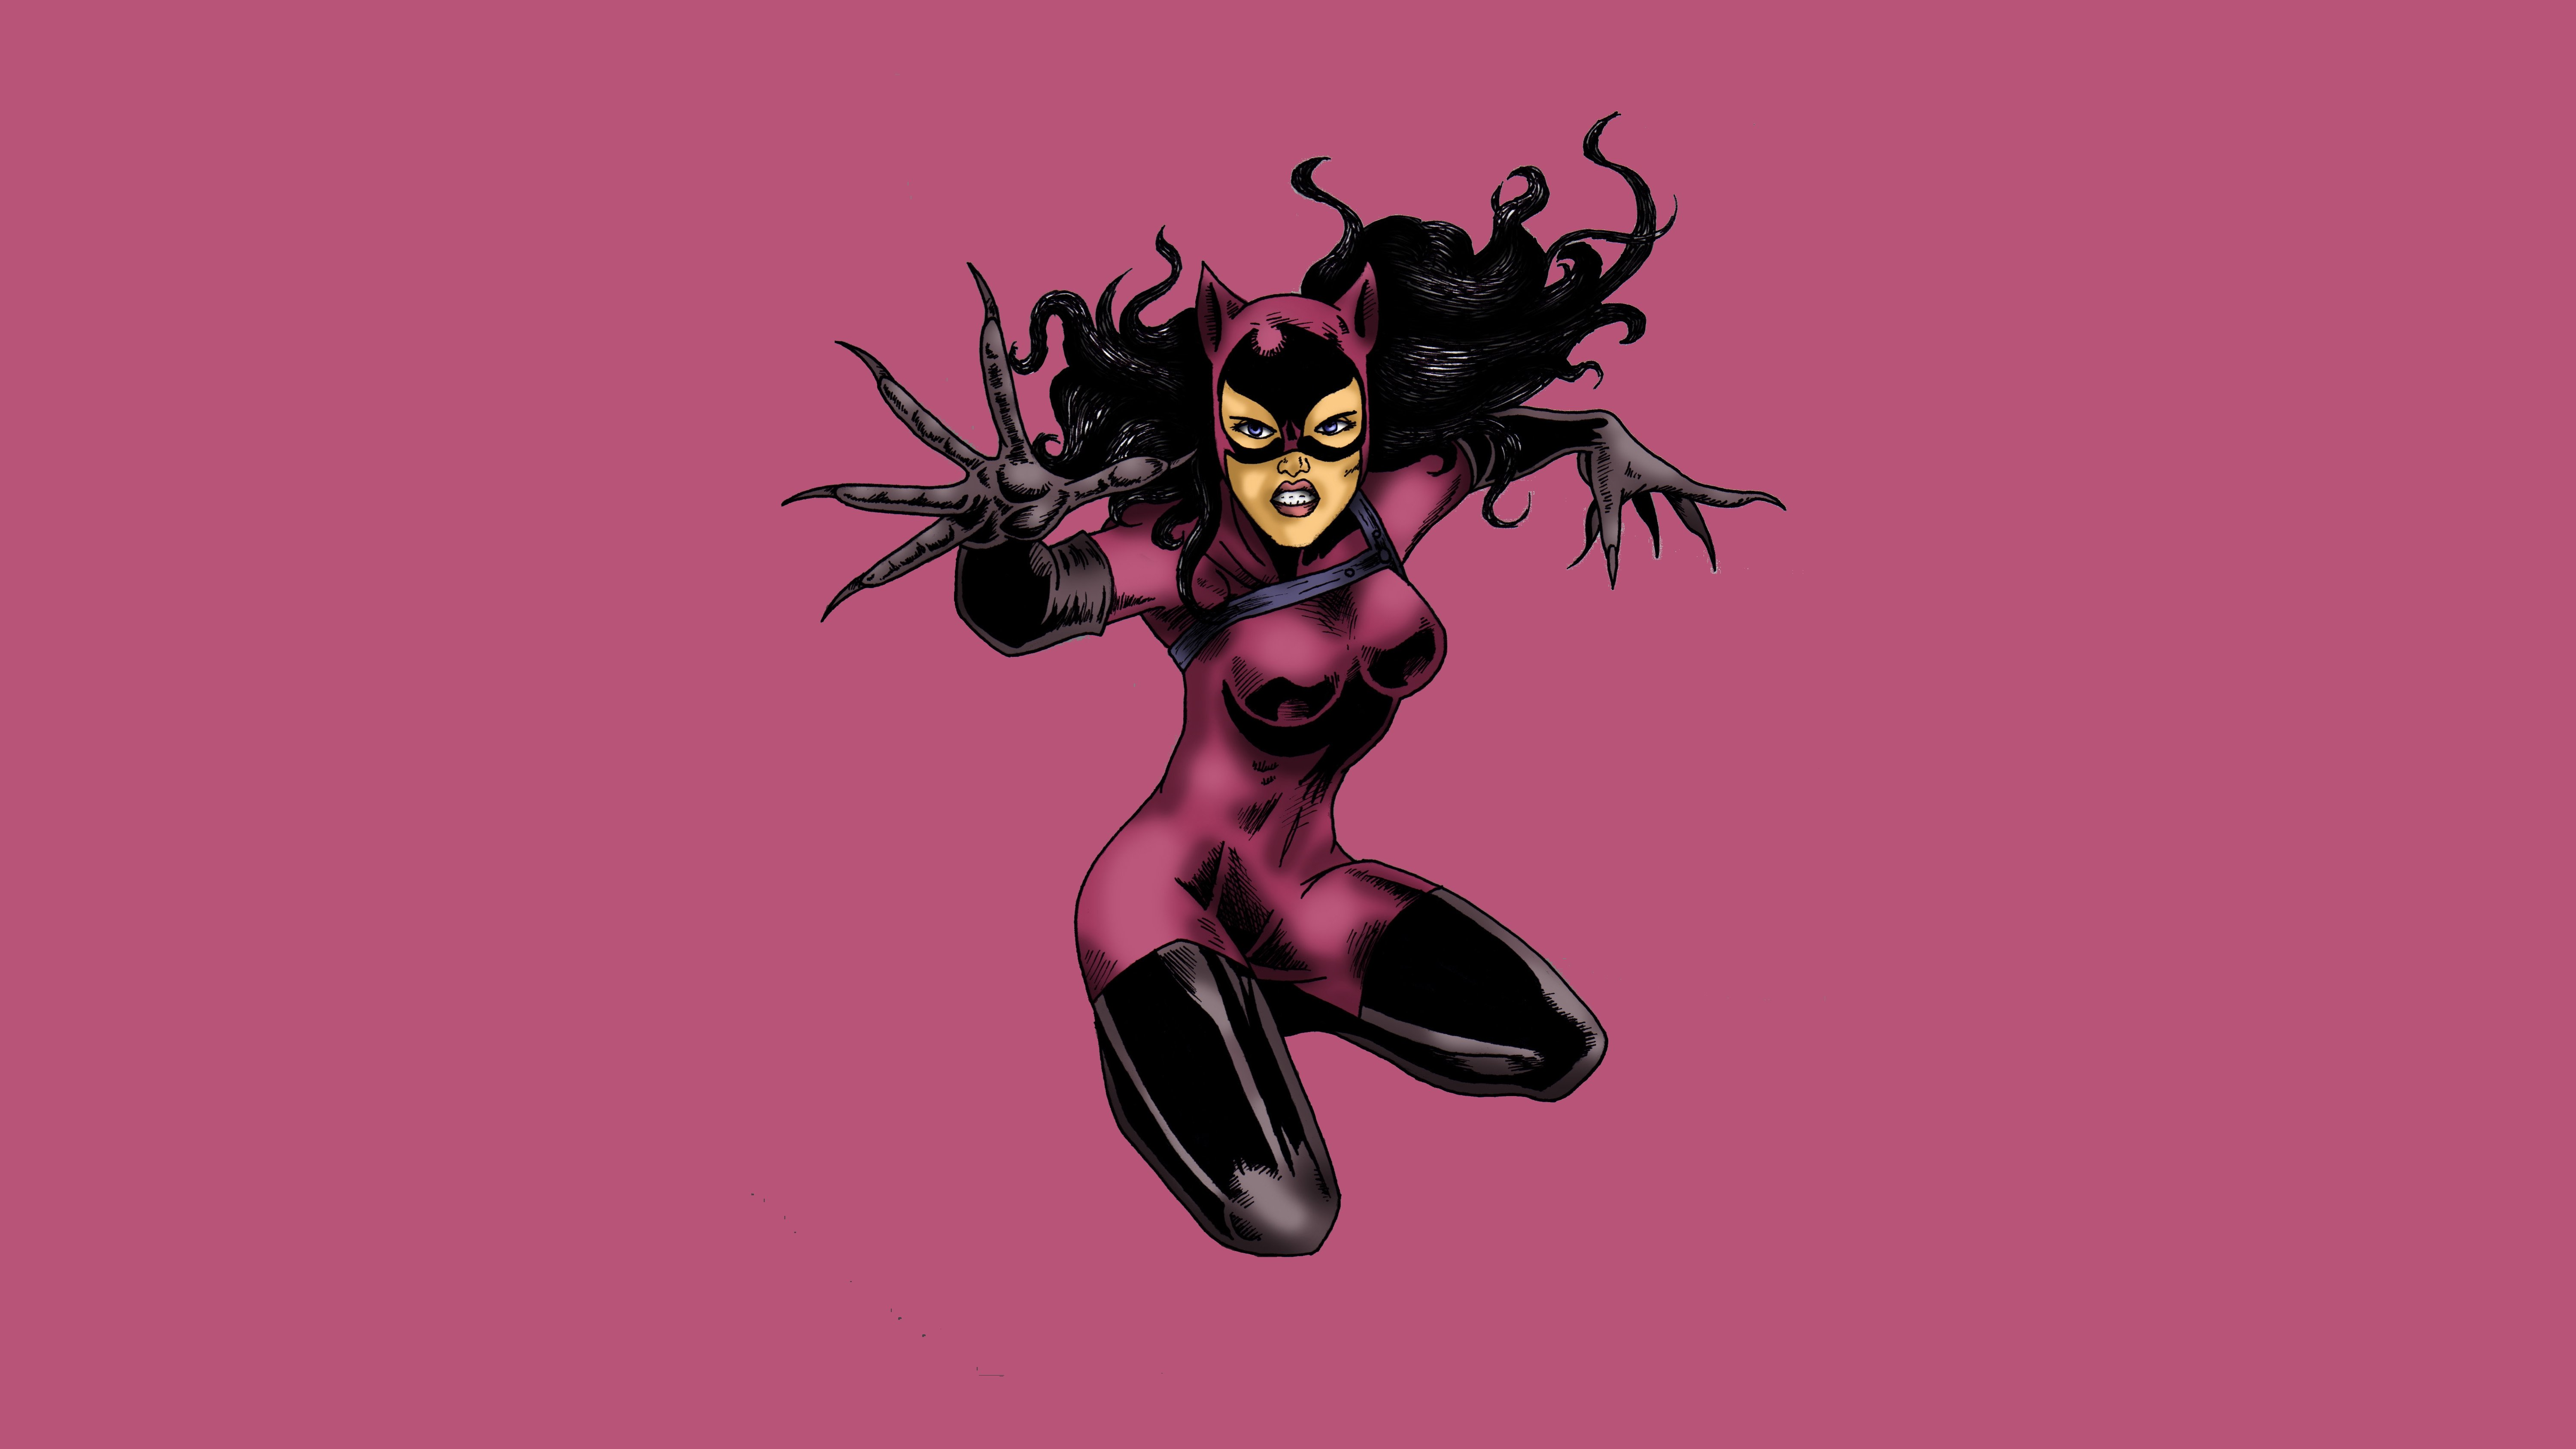 Catwoman Computer Wallpapers Desktop Backgrounds 6000x3375 ID 6000x3375